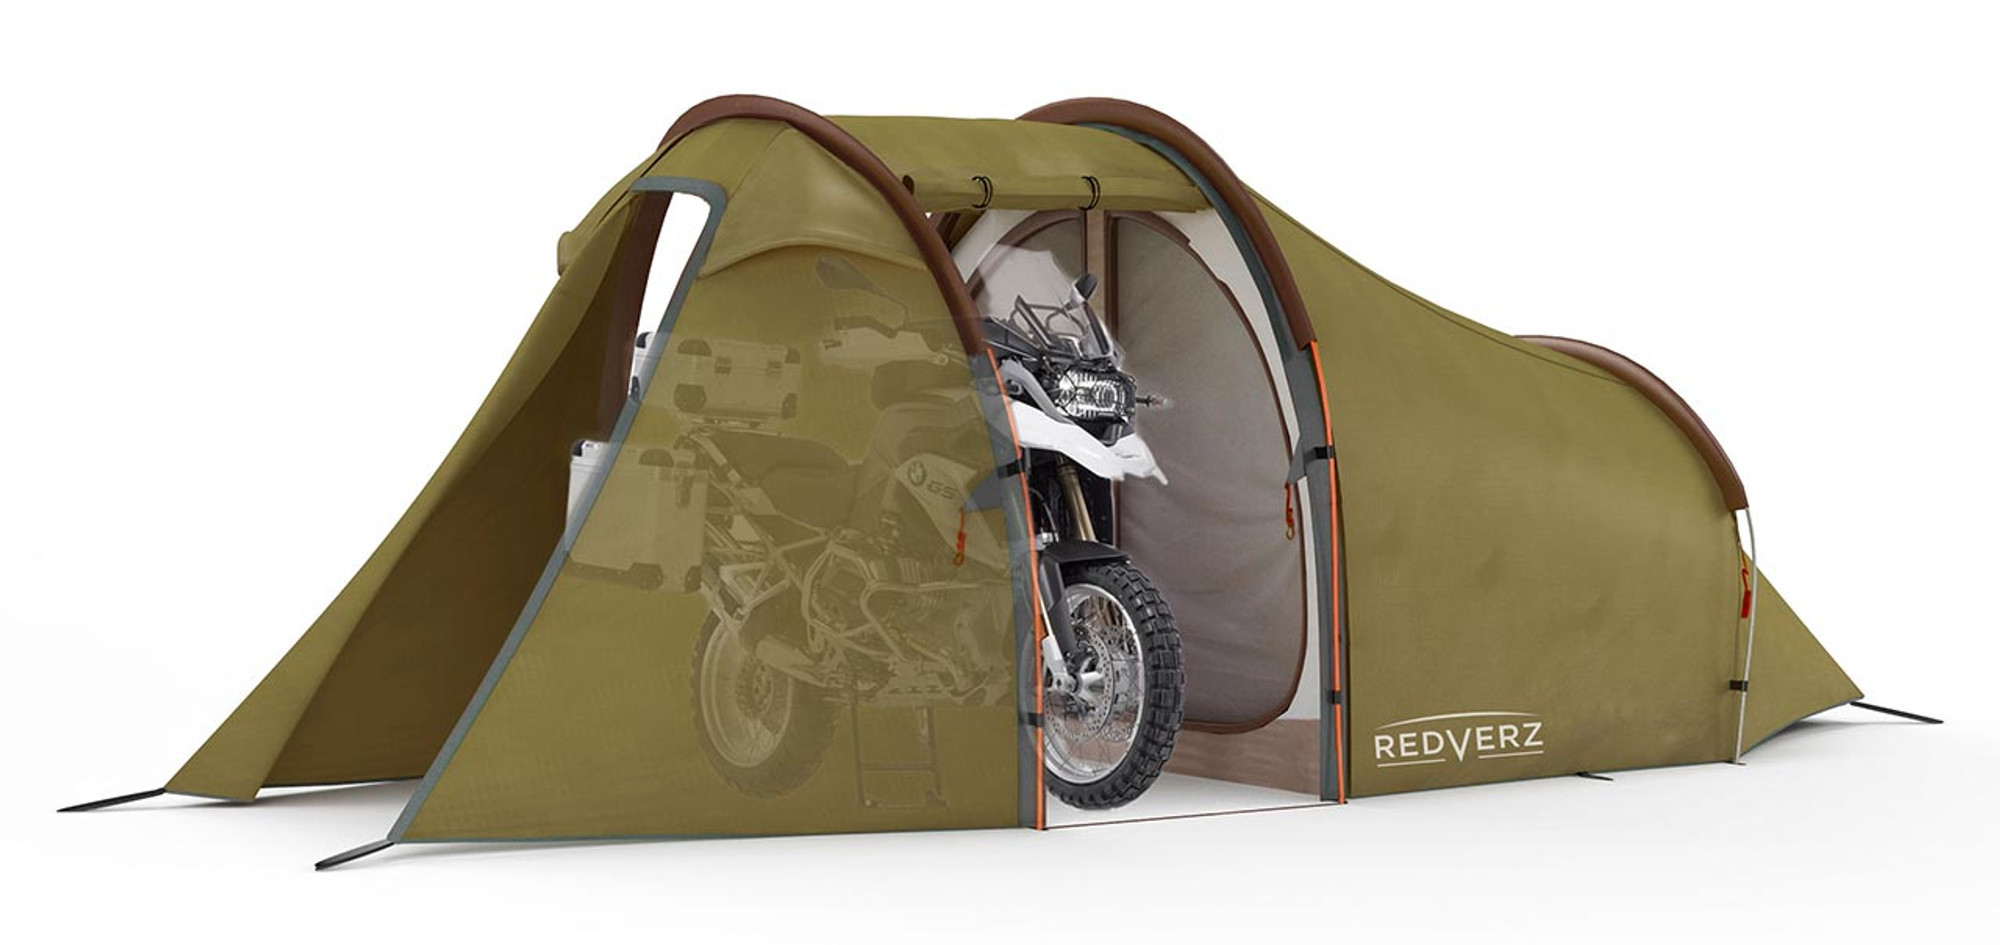 ... Redverz Motorcycle Tent - Atacama Expedition Tent in Green. Main garage doors open ...  sc 1 st  Redverz Gear & Redverz Gear - Atacama Expedition Motorcycle Tent